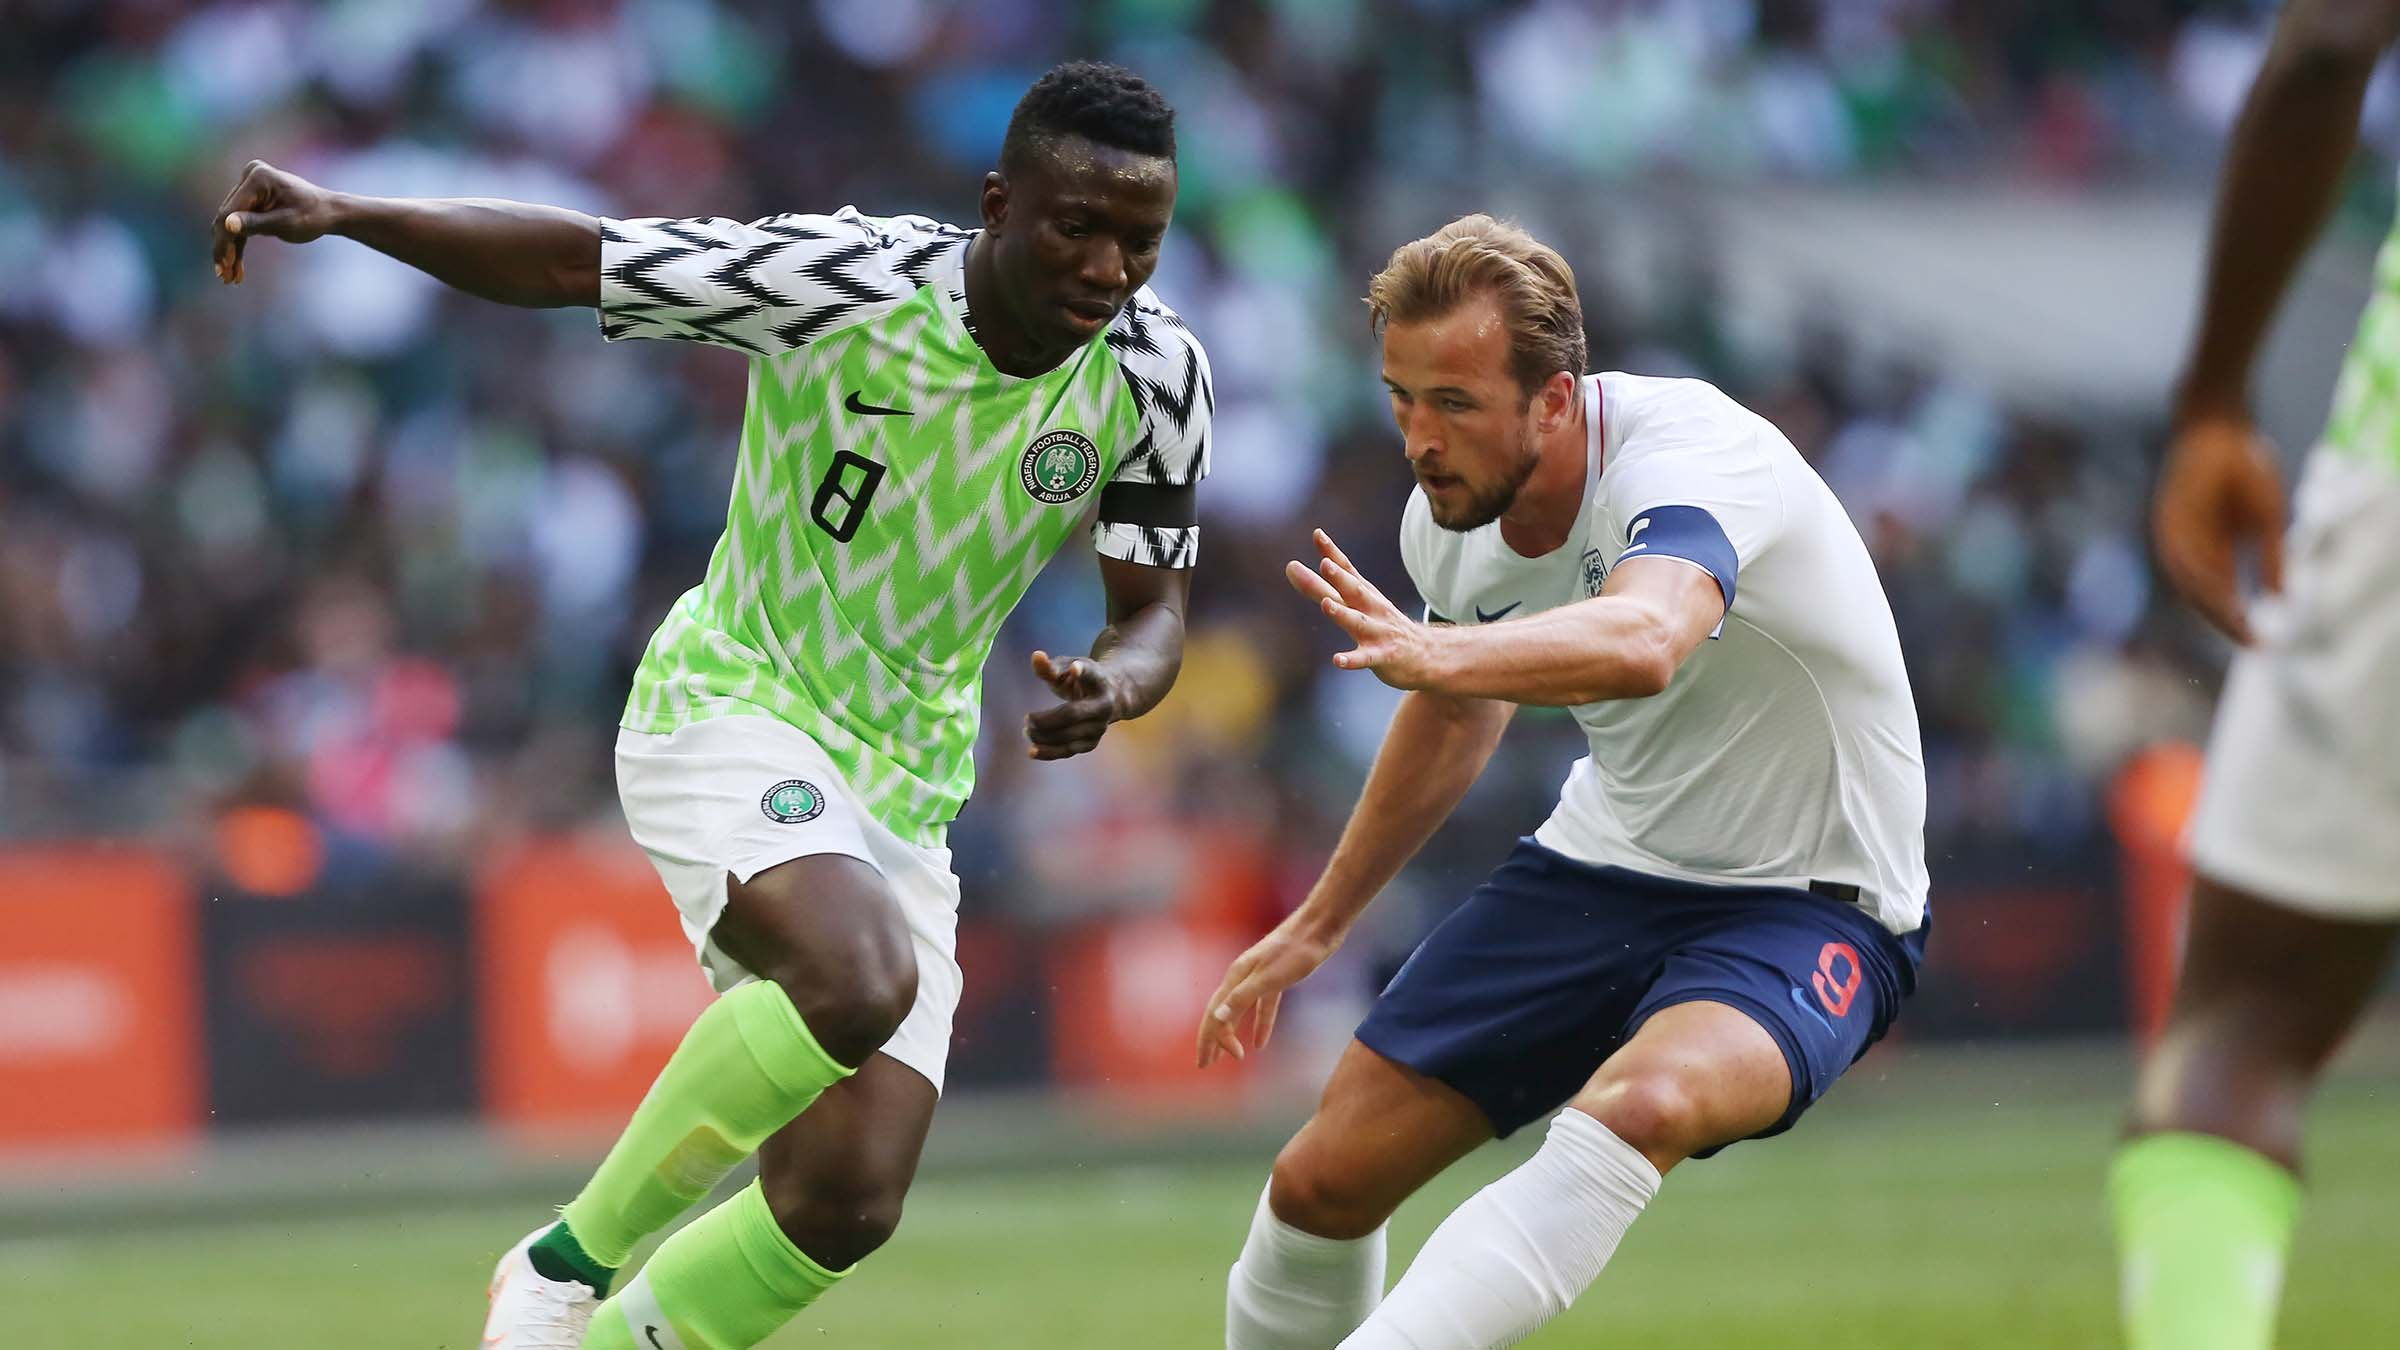 Stoke City's Scouts To Monitor Etebo In Seychelles